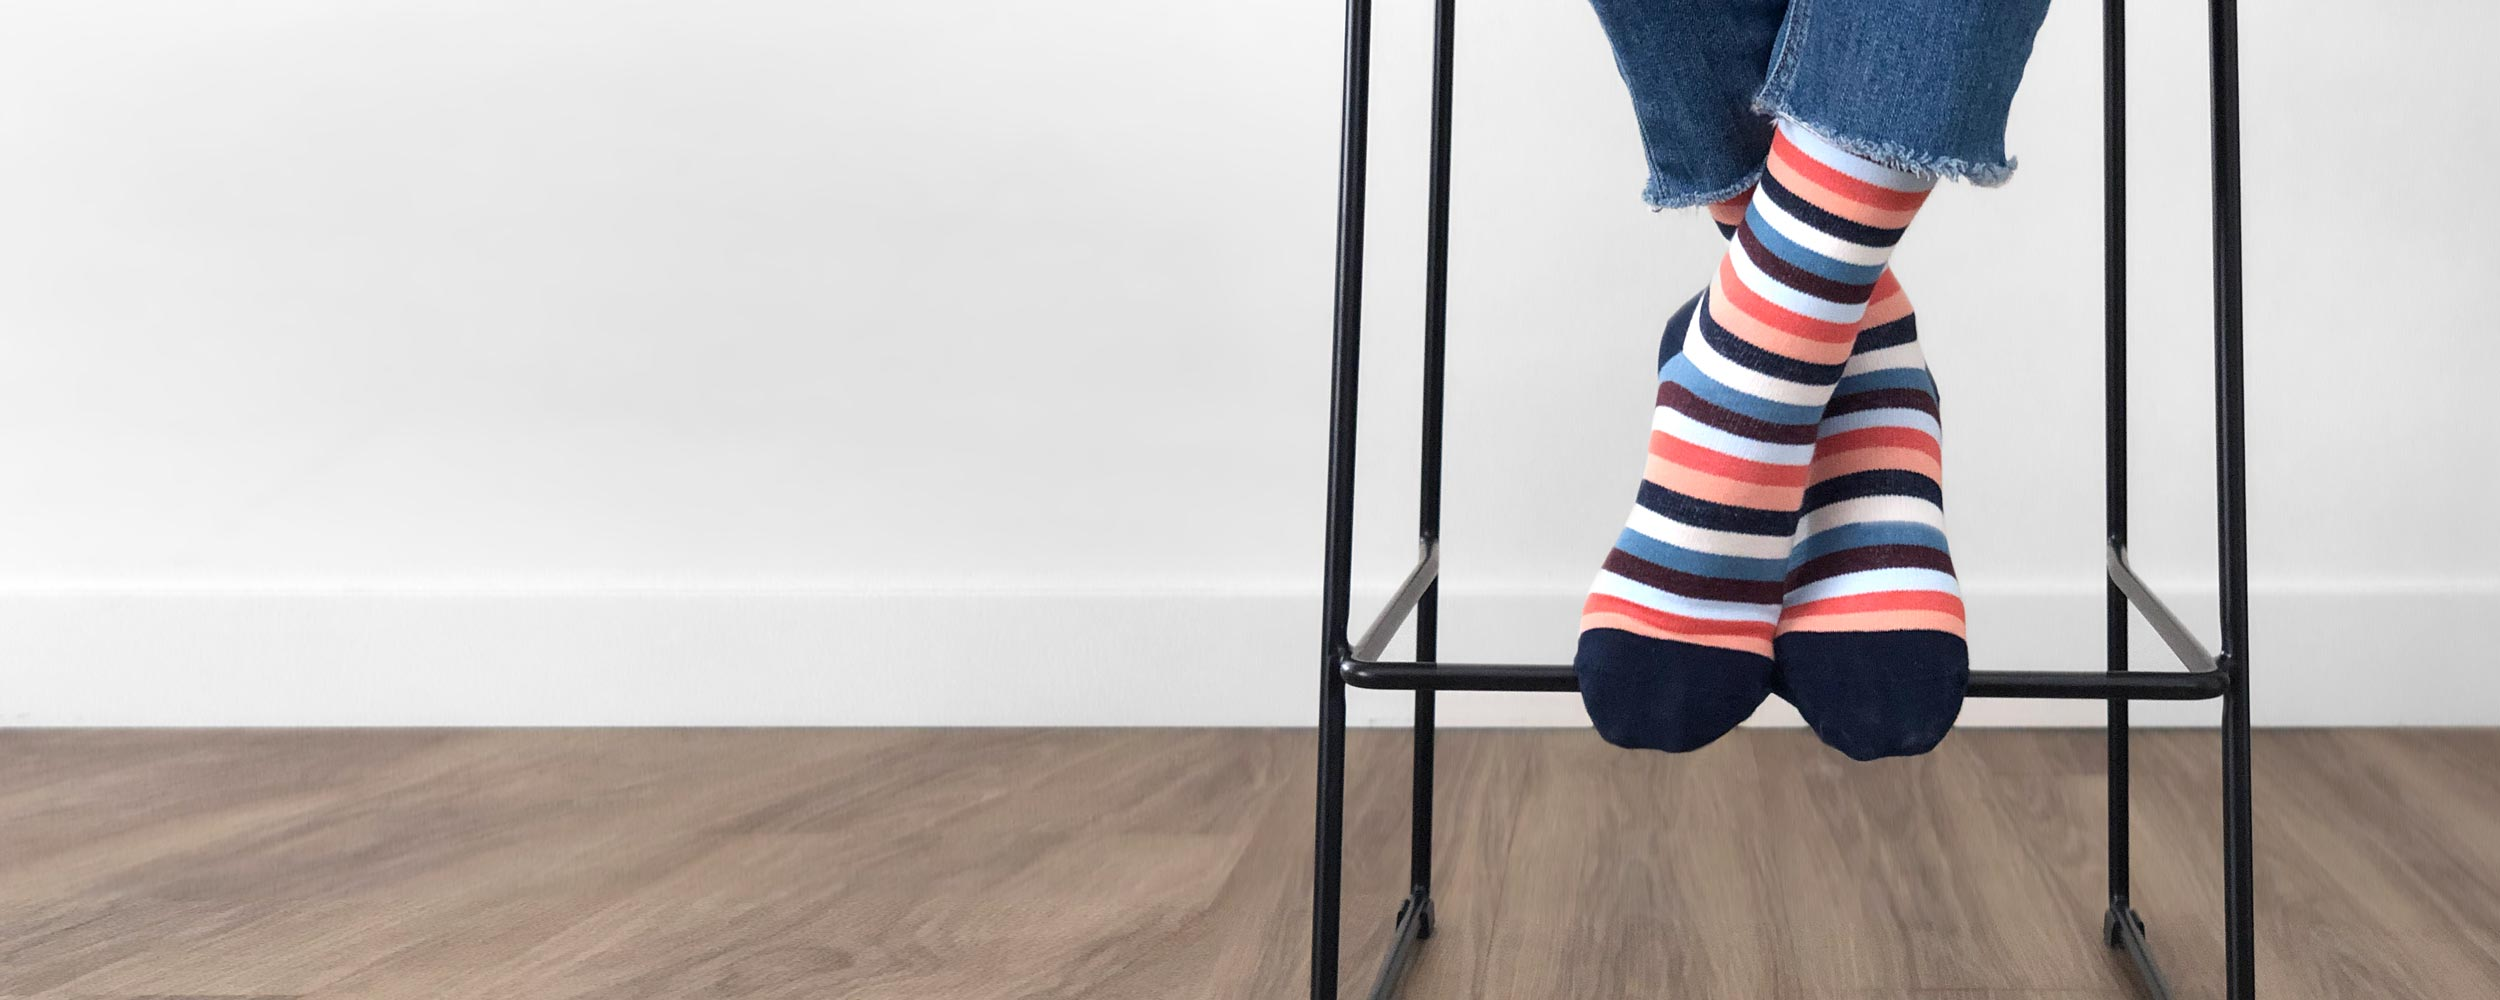 Woman's feet on bar stool wearing coral and blue striped compression socks